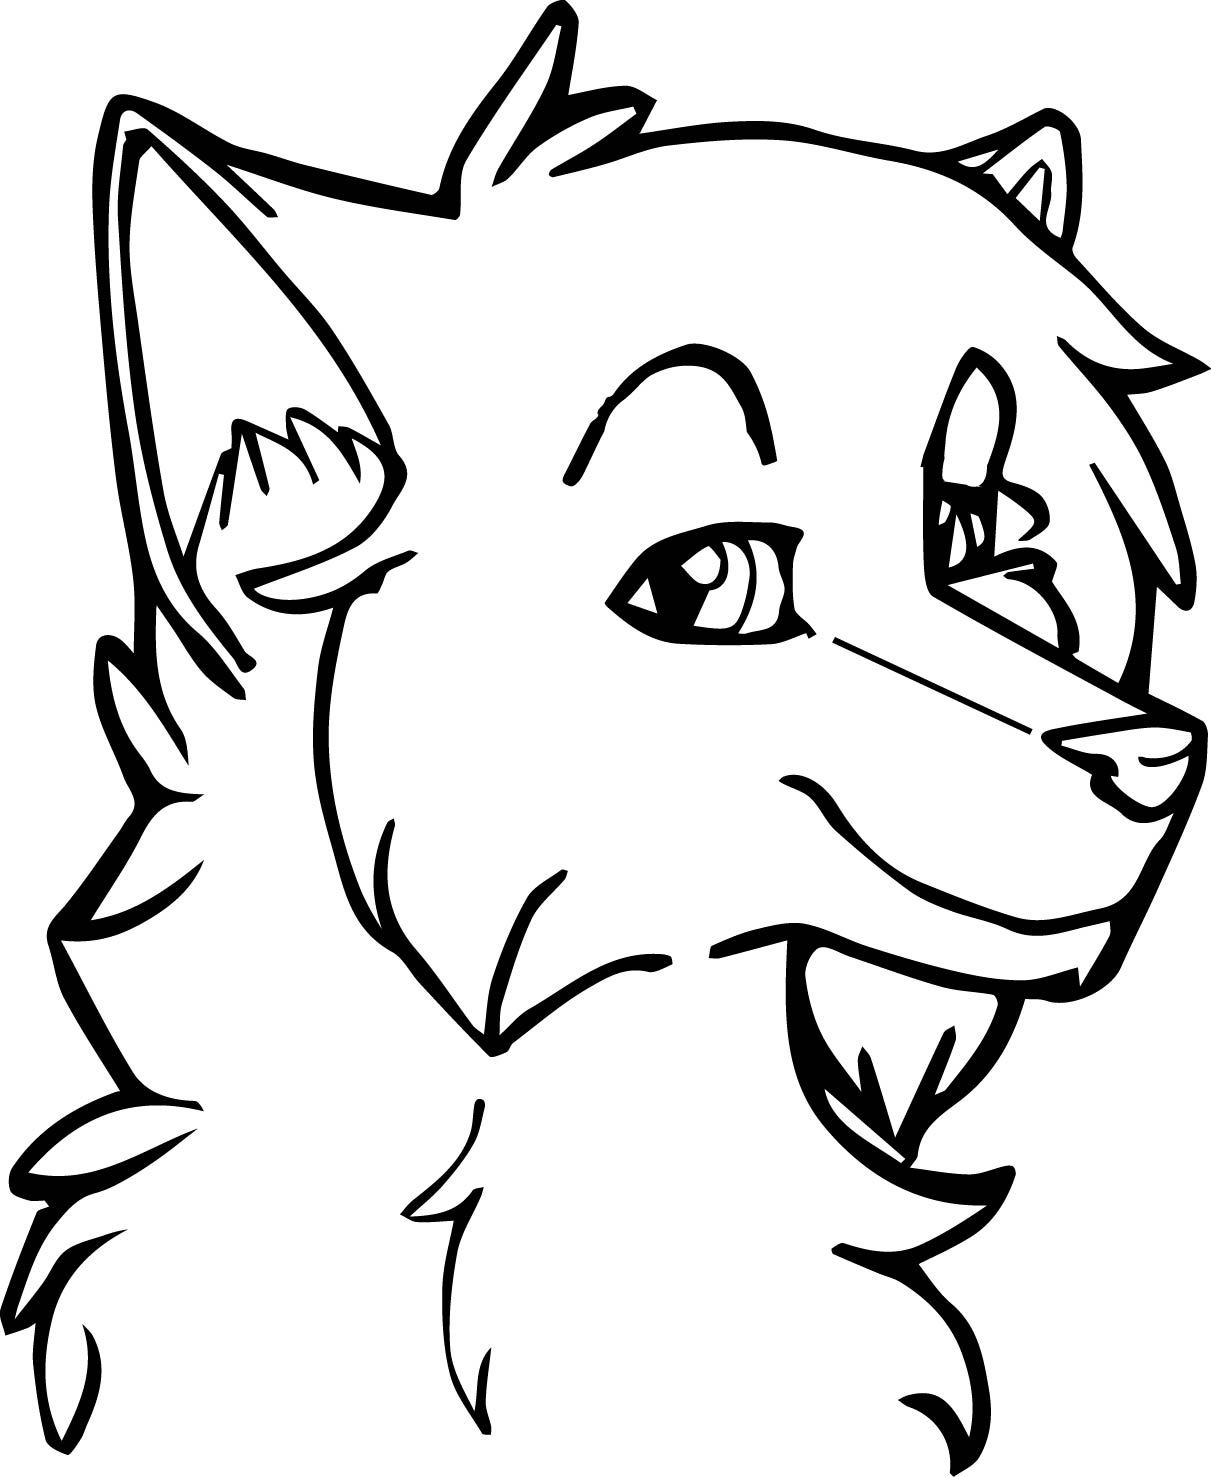 1211x1477 Elegant Anime Wolf Coloring Pages Funny Coloring Free Coloring